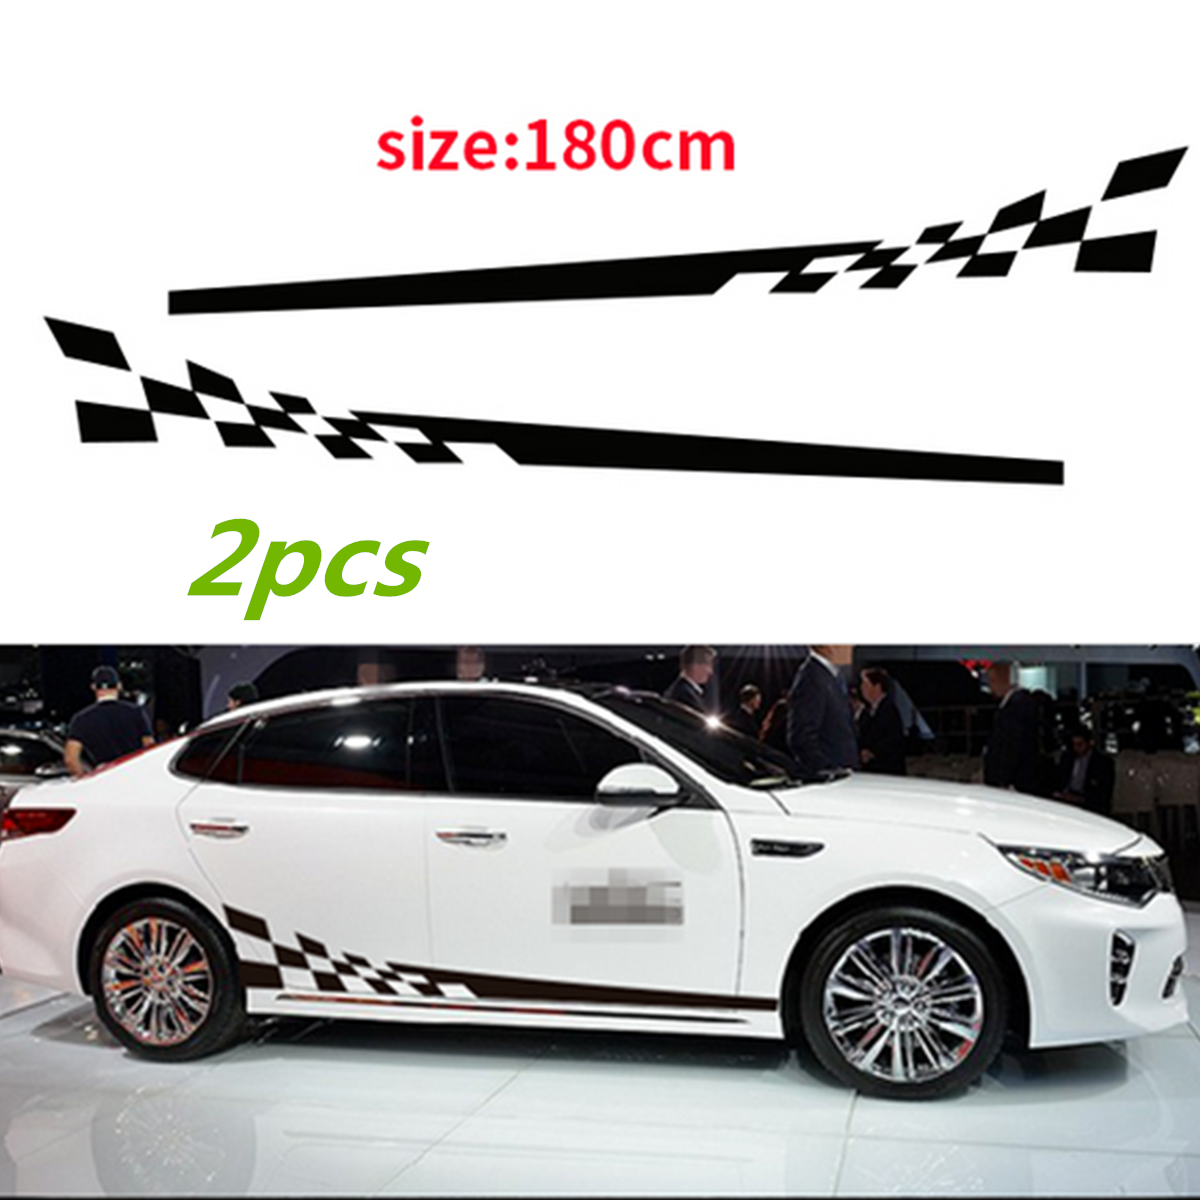 2Pcs Car Decal Vinyl Graphics Side Stickers Body Decals ...